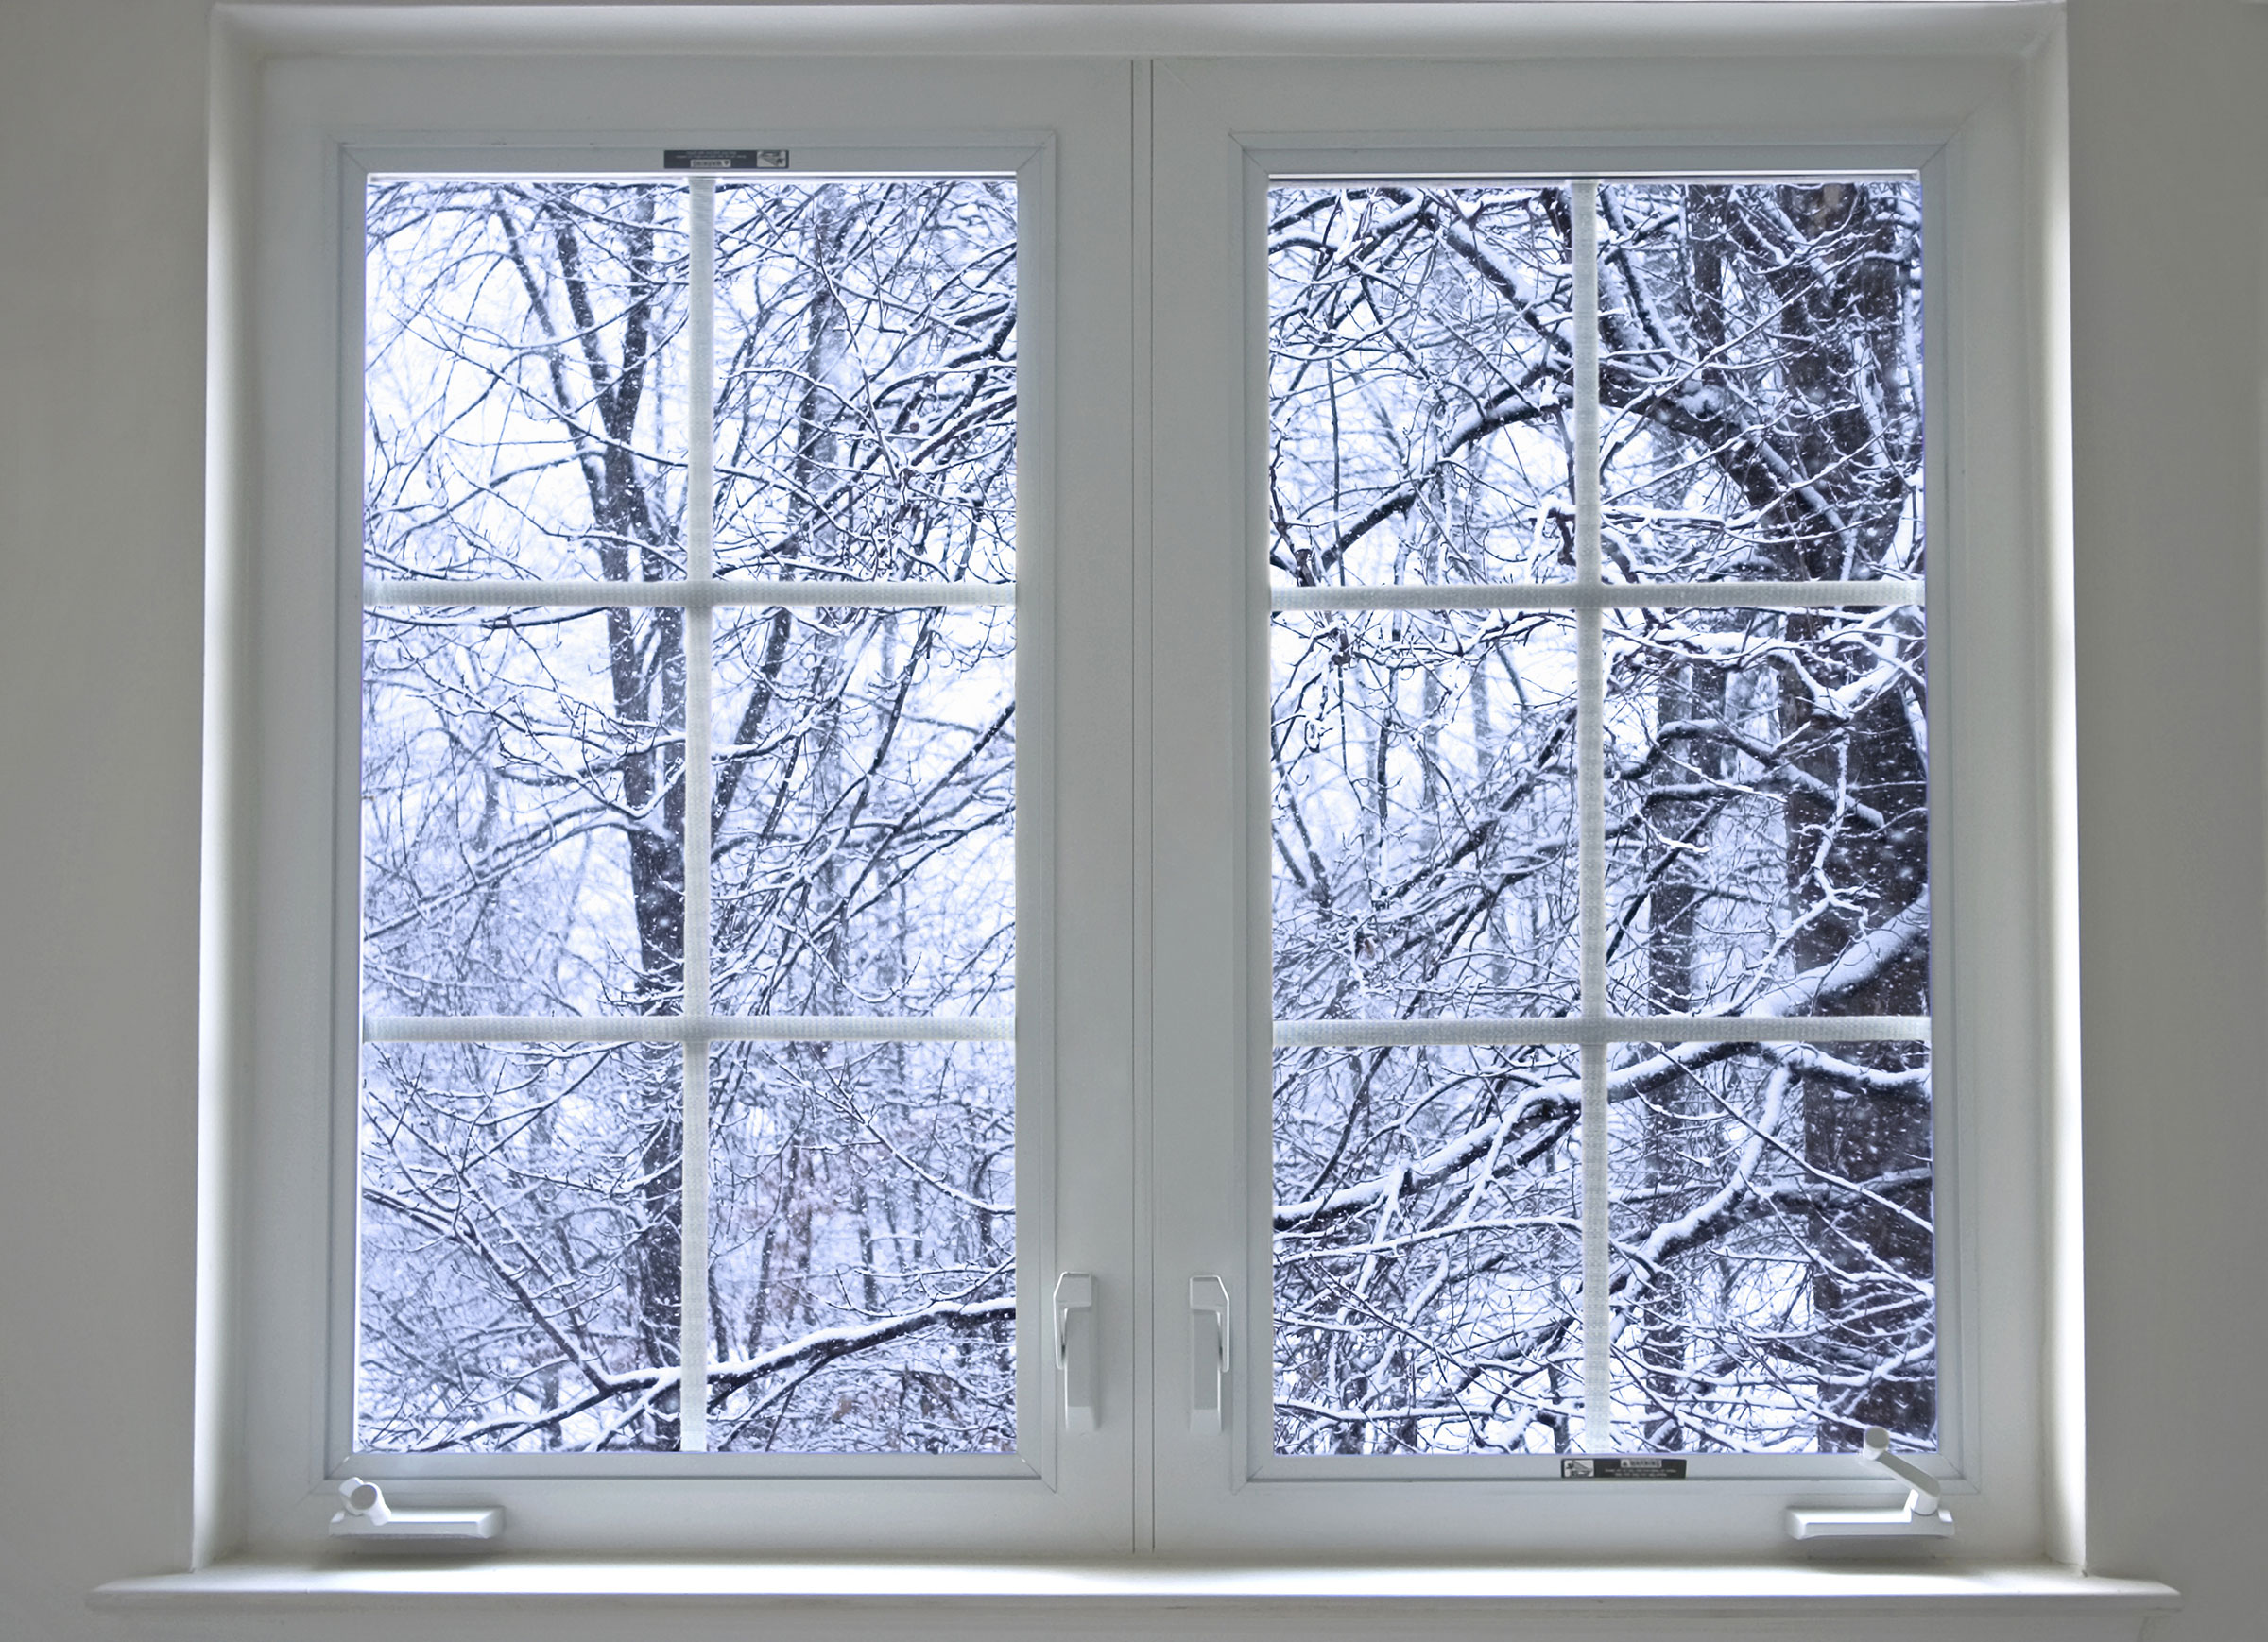 Snowy window (https://gordonswindowdecor.com/wp-content/uploads/sites/23/2012/07/needsheat_snowy.jpg)